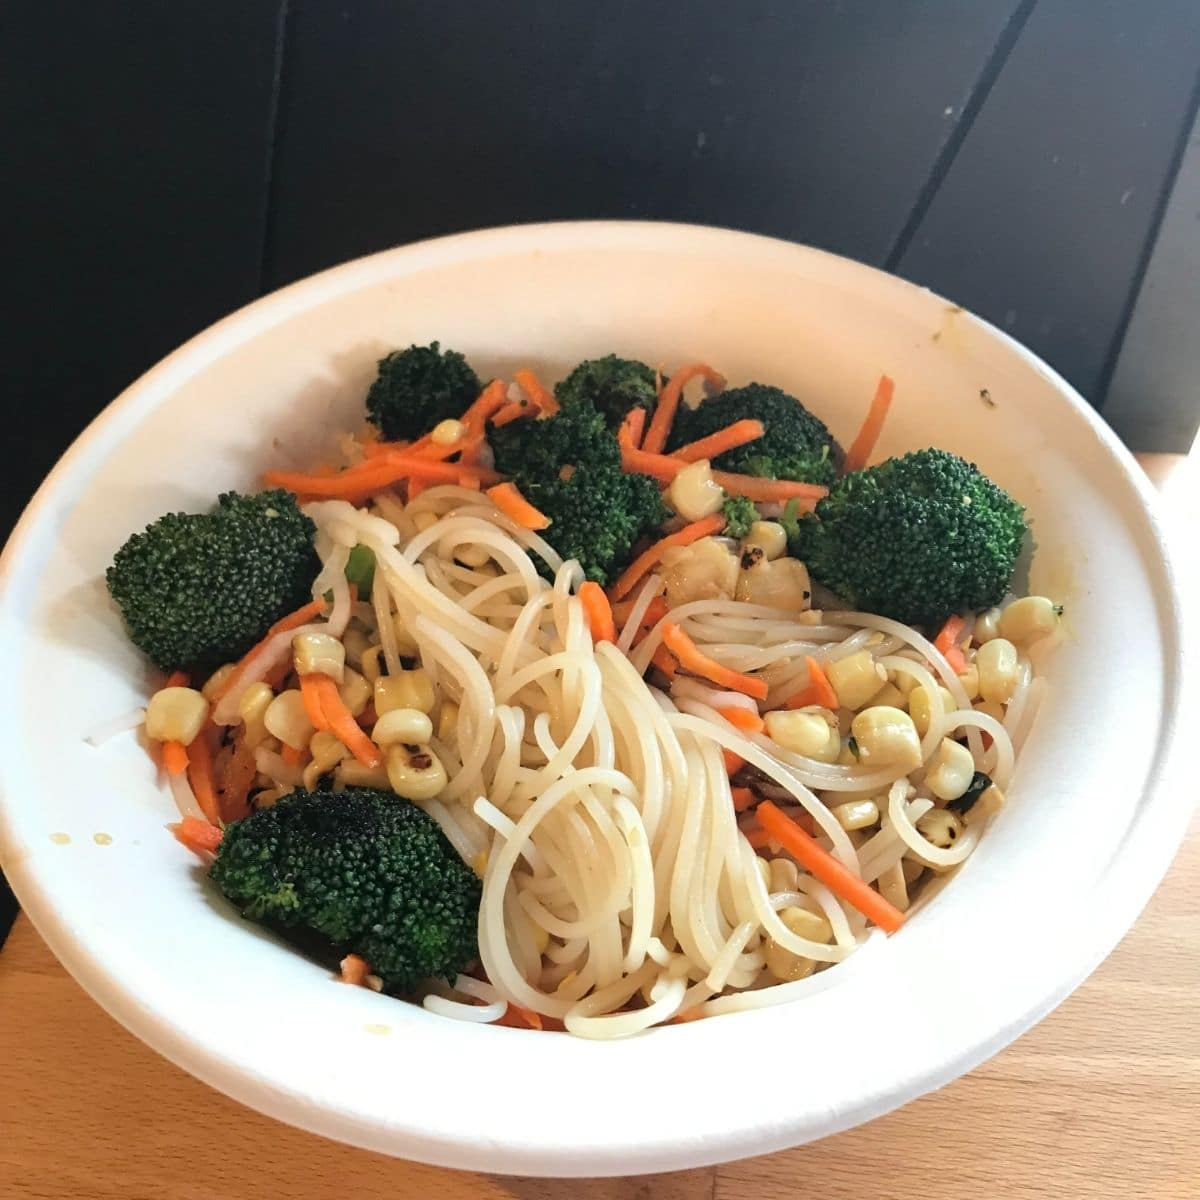 zao asian cafe rice noodle bowl with corn, carrots, and broccoli in a white paper bowl on a wood table